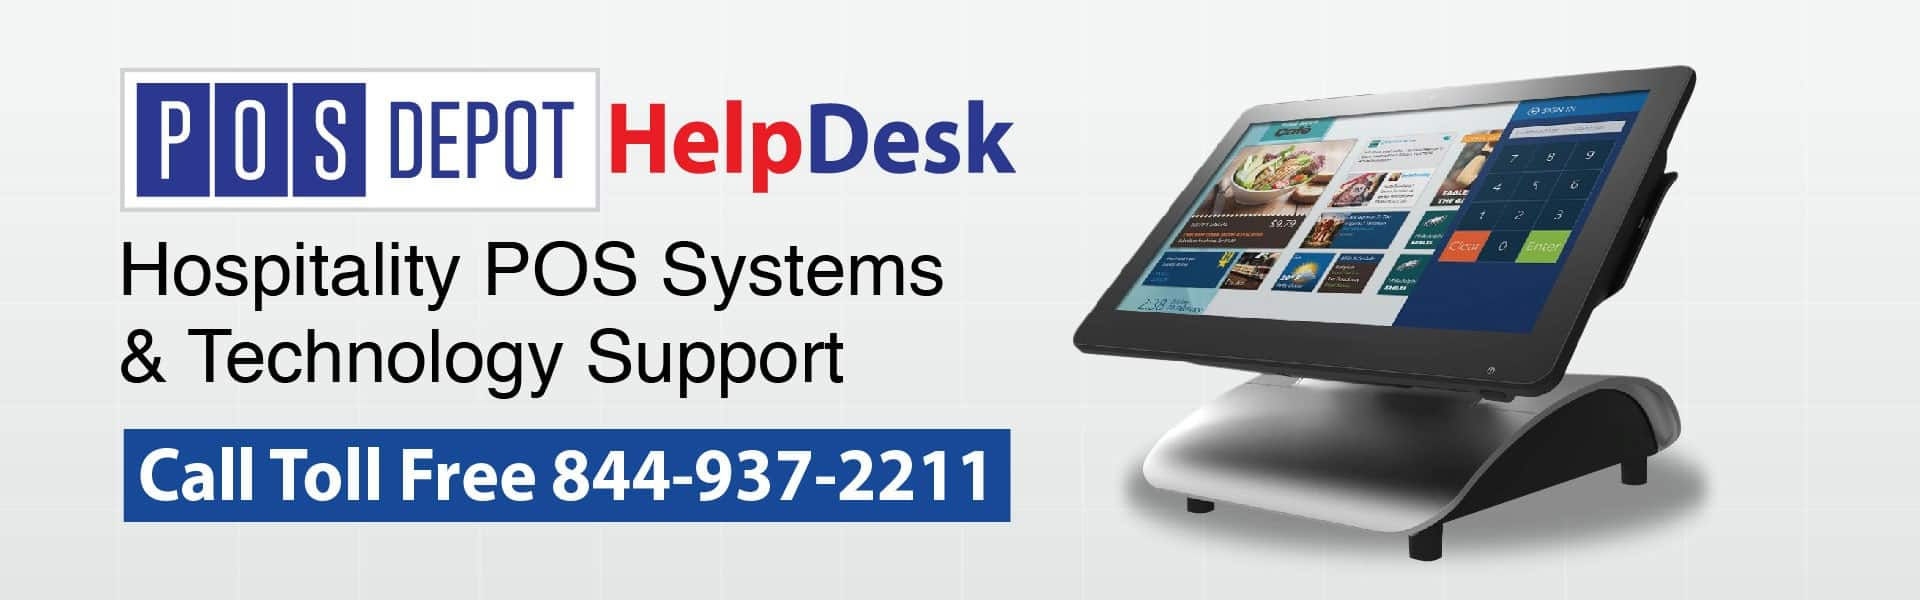 Pos Depot Retail Point Of Help Desk Support Services